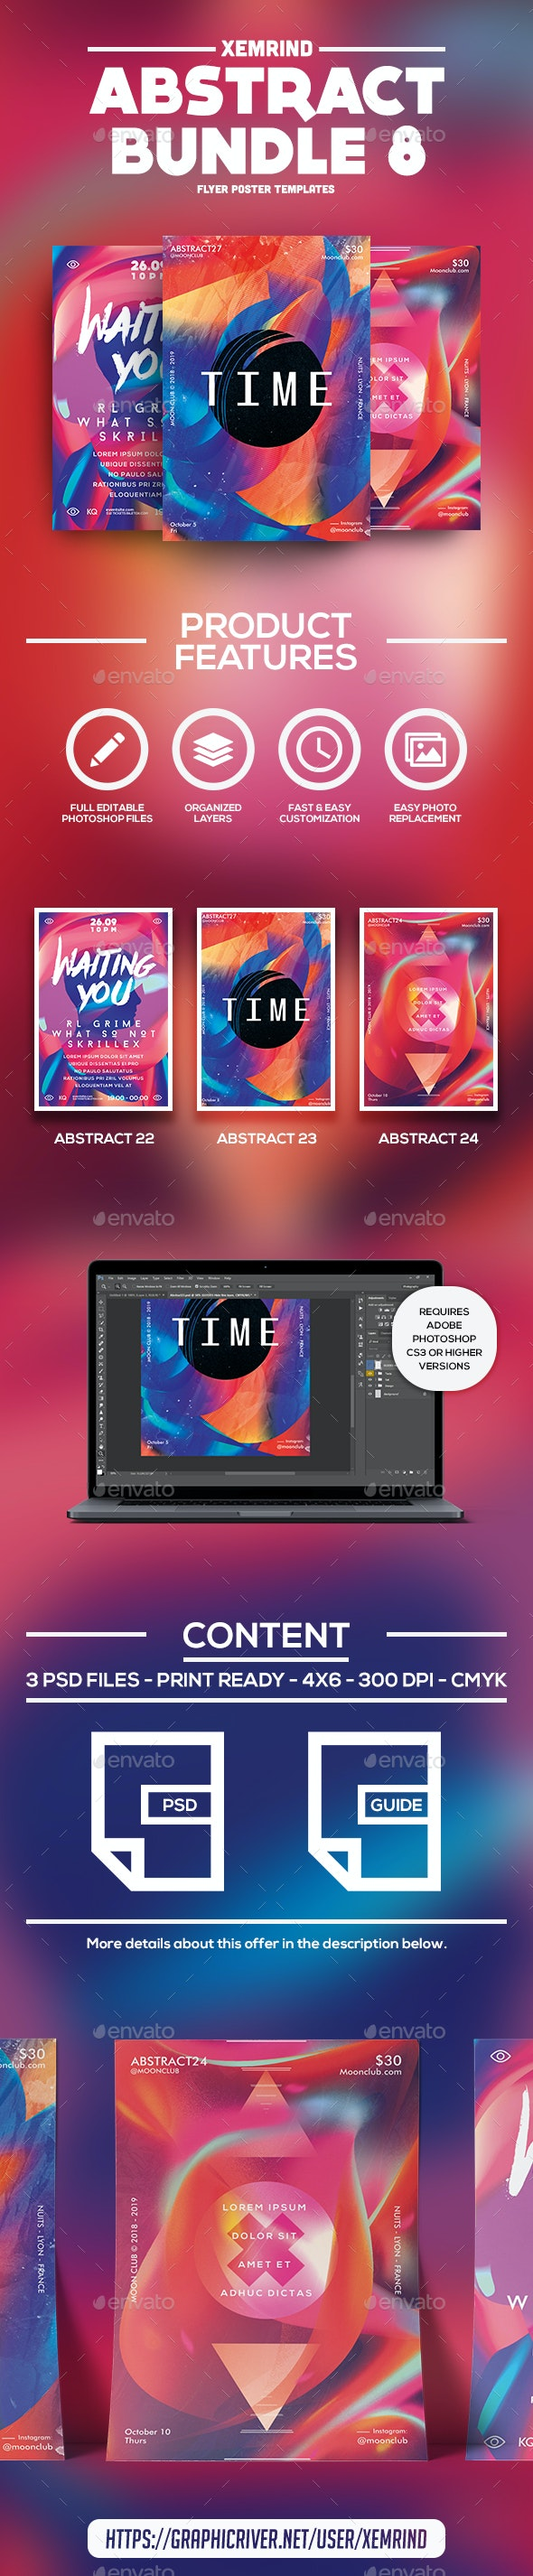 Abstract Flyer/Poster Template Bundle 8 - Events Flyers